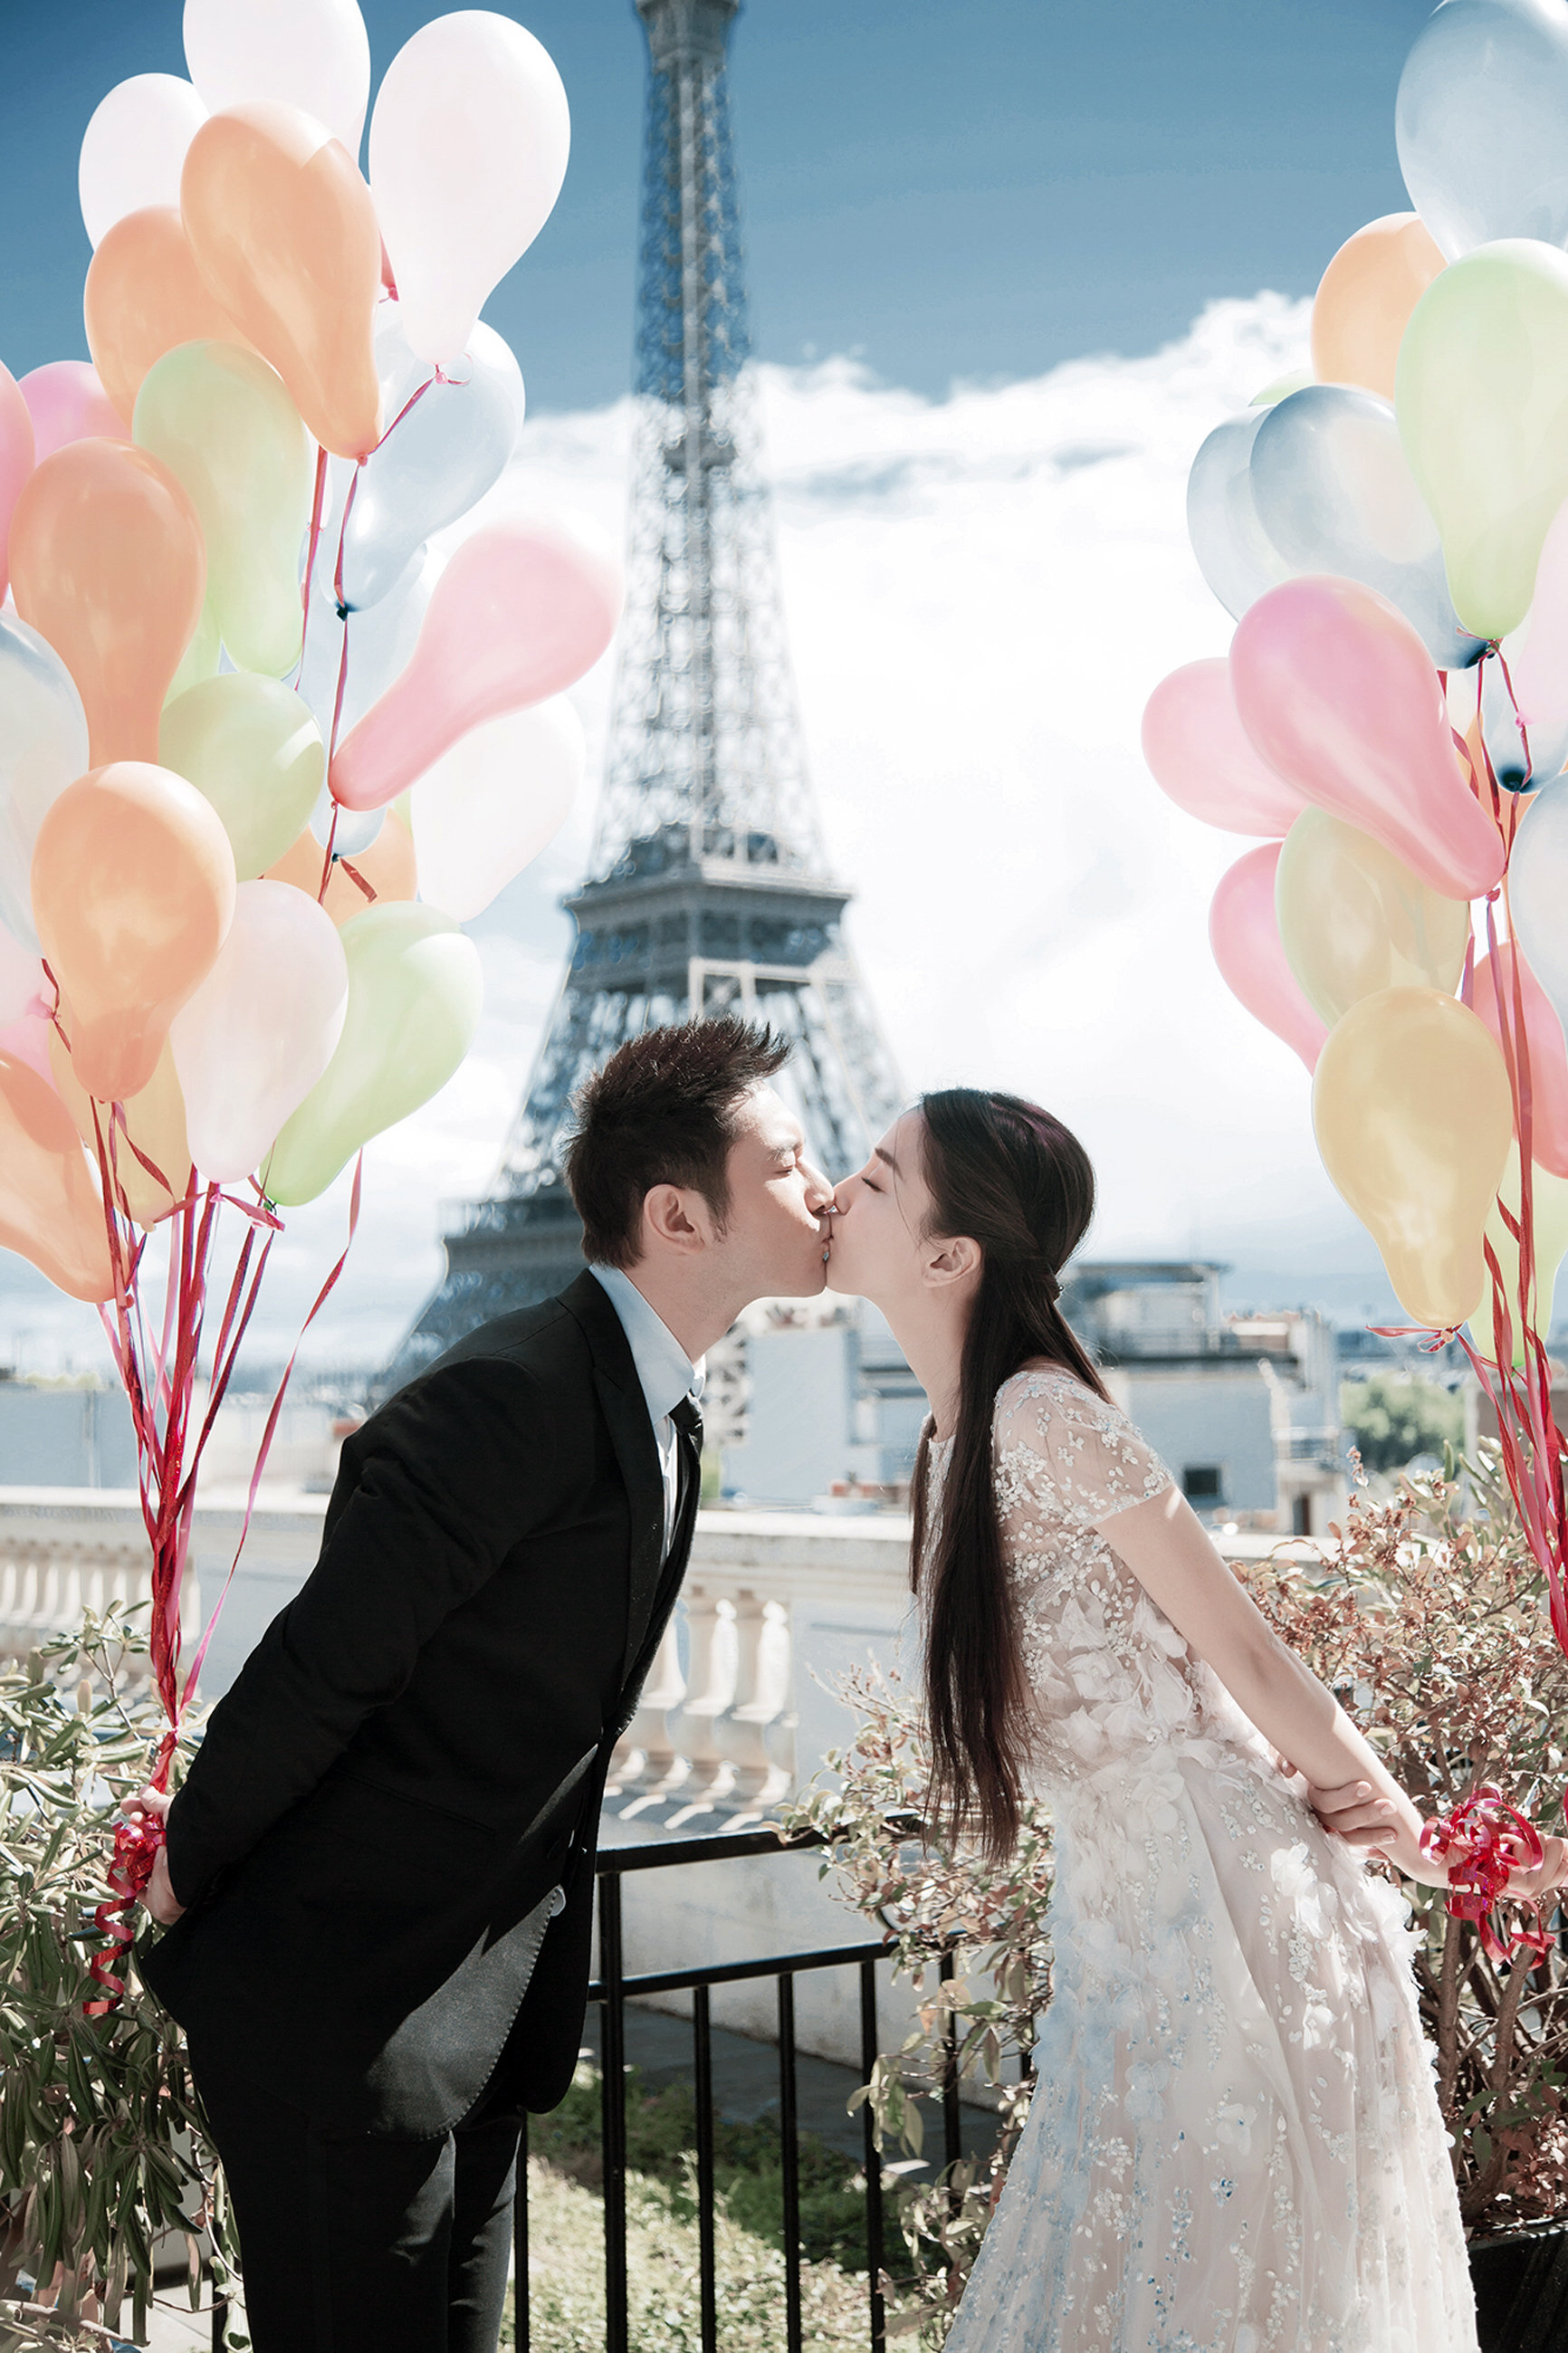 Chinese celebrity couple Huang Xiaoming and Angelababy wedding